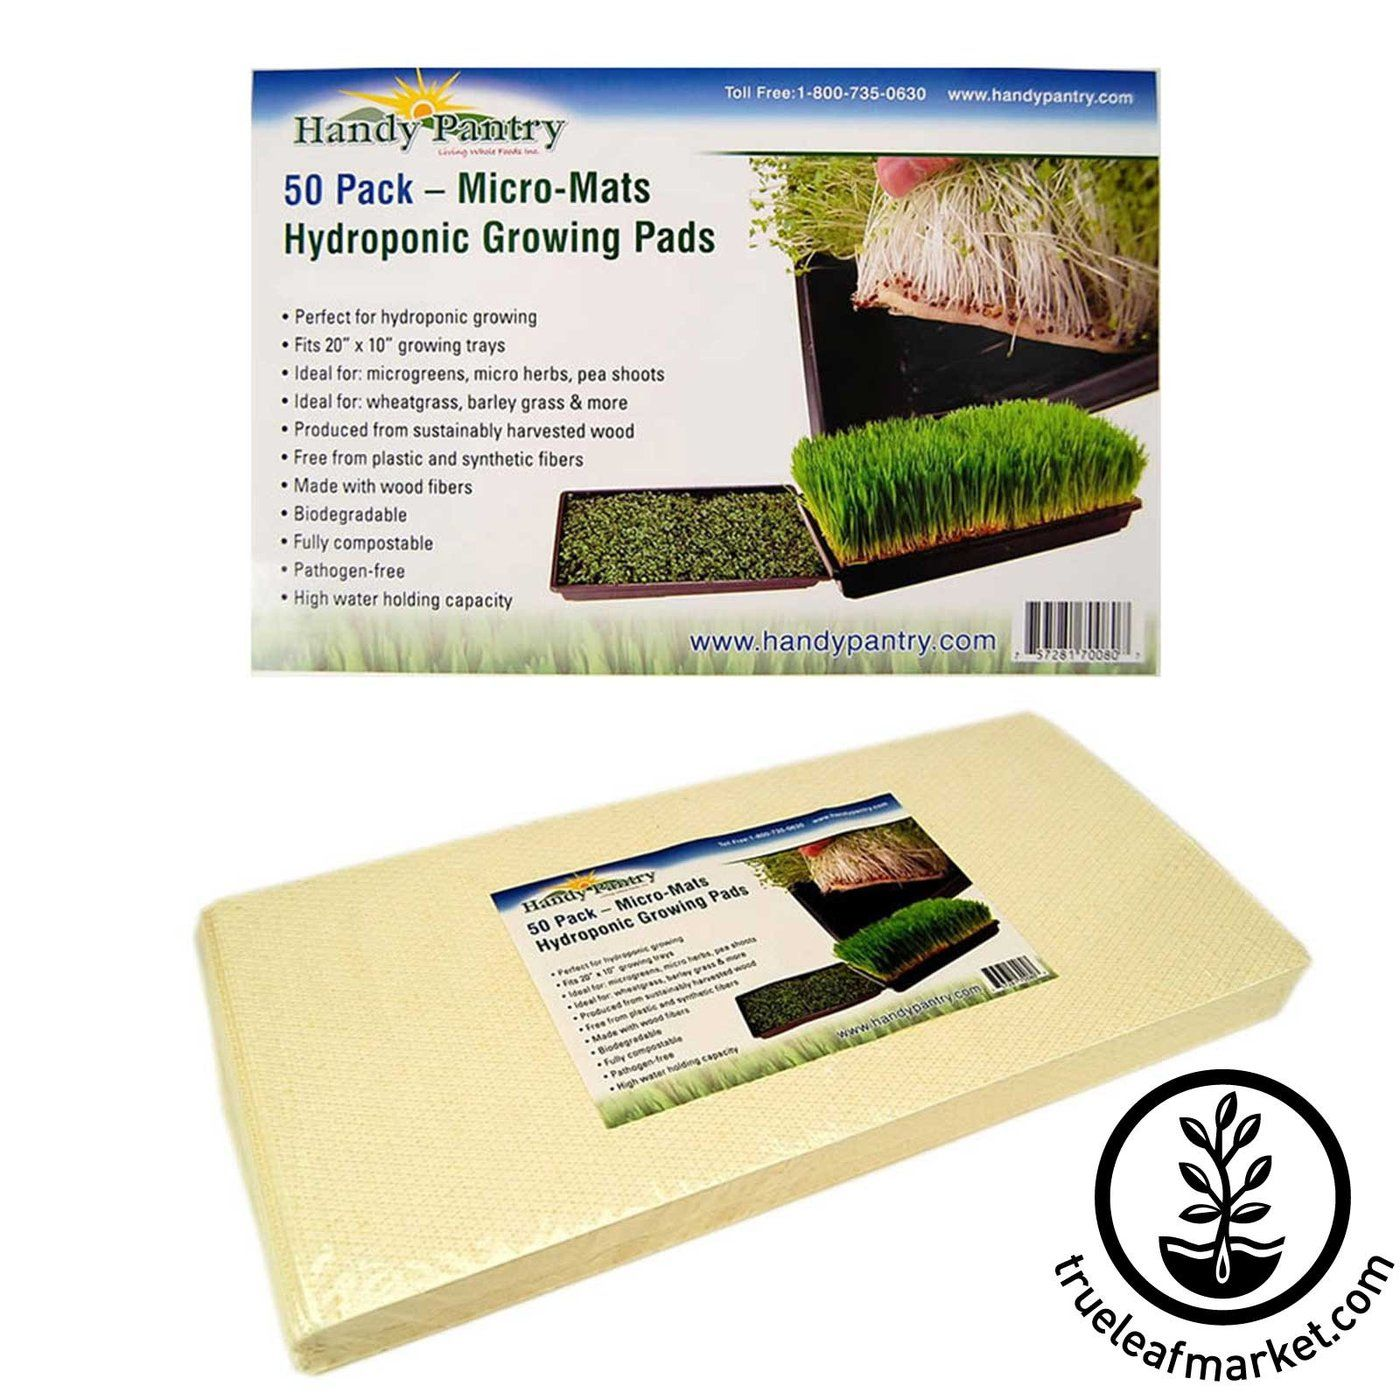 Micro Mats Hydroponic Growing Pads For Wheatgrass Microgreens More Hydroponic Growing Microgreens Hydroponics